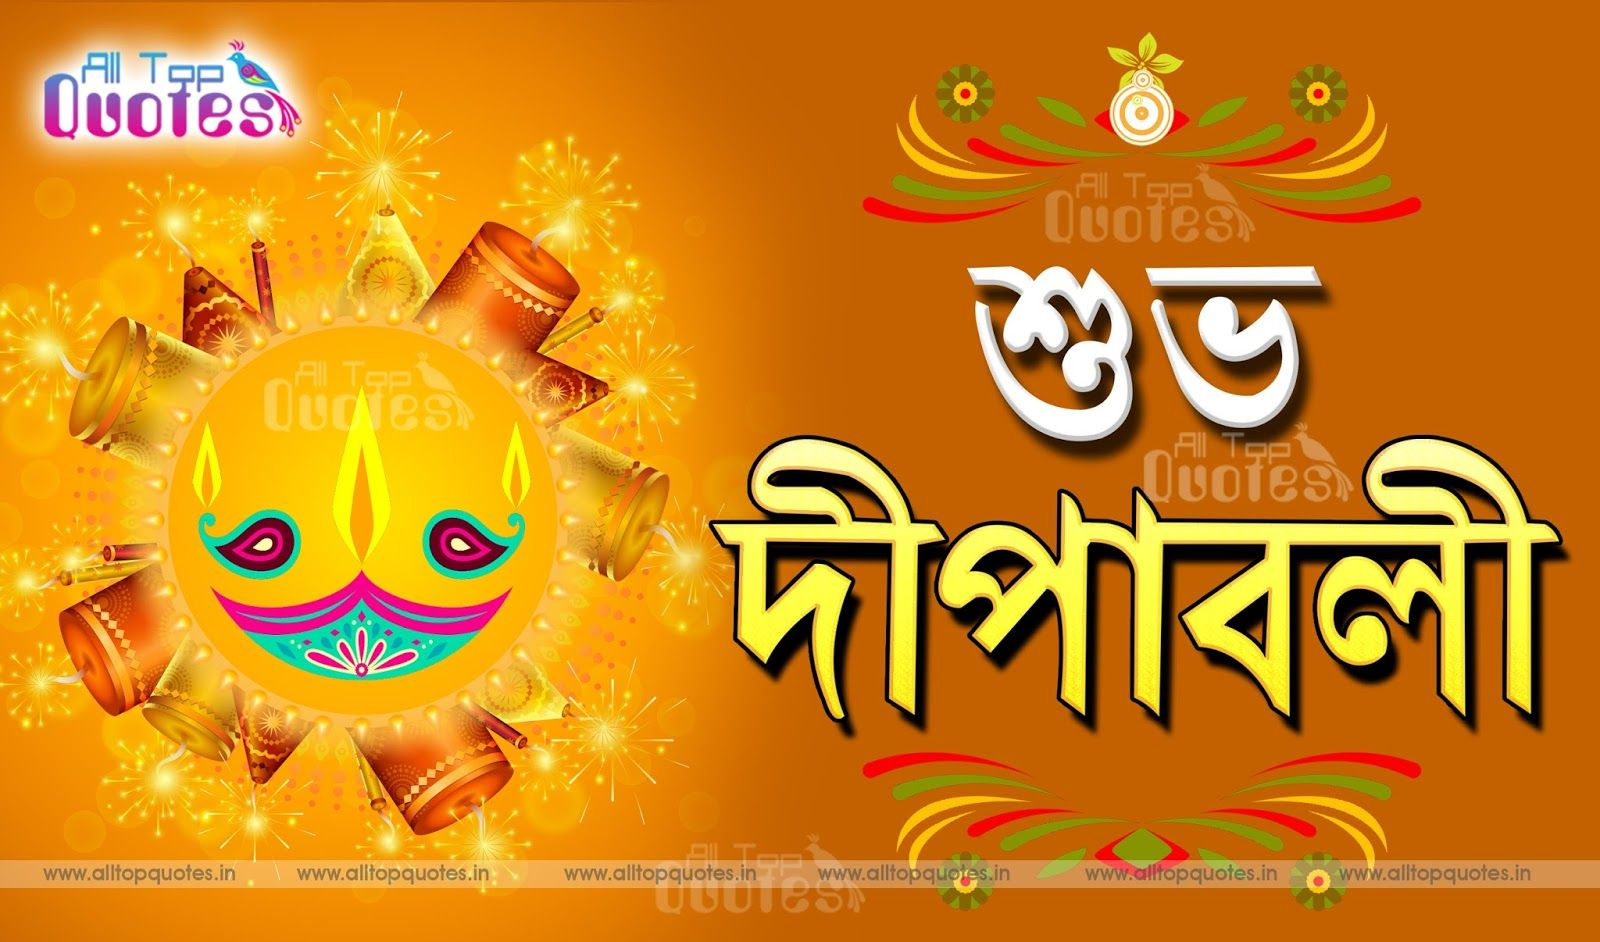 Here is a 2015 deepavali bengali language quotes and messages happy diwali bengali quotes and greetings online kristyandbryce Choice Image